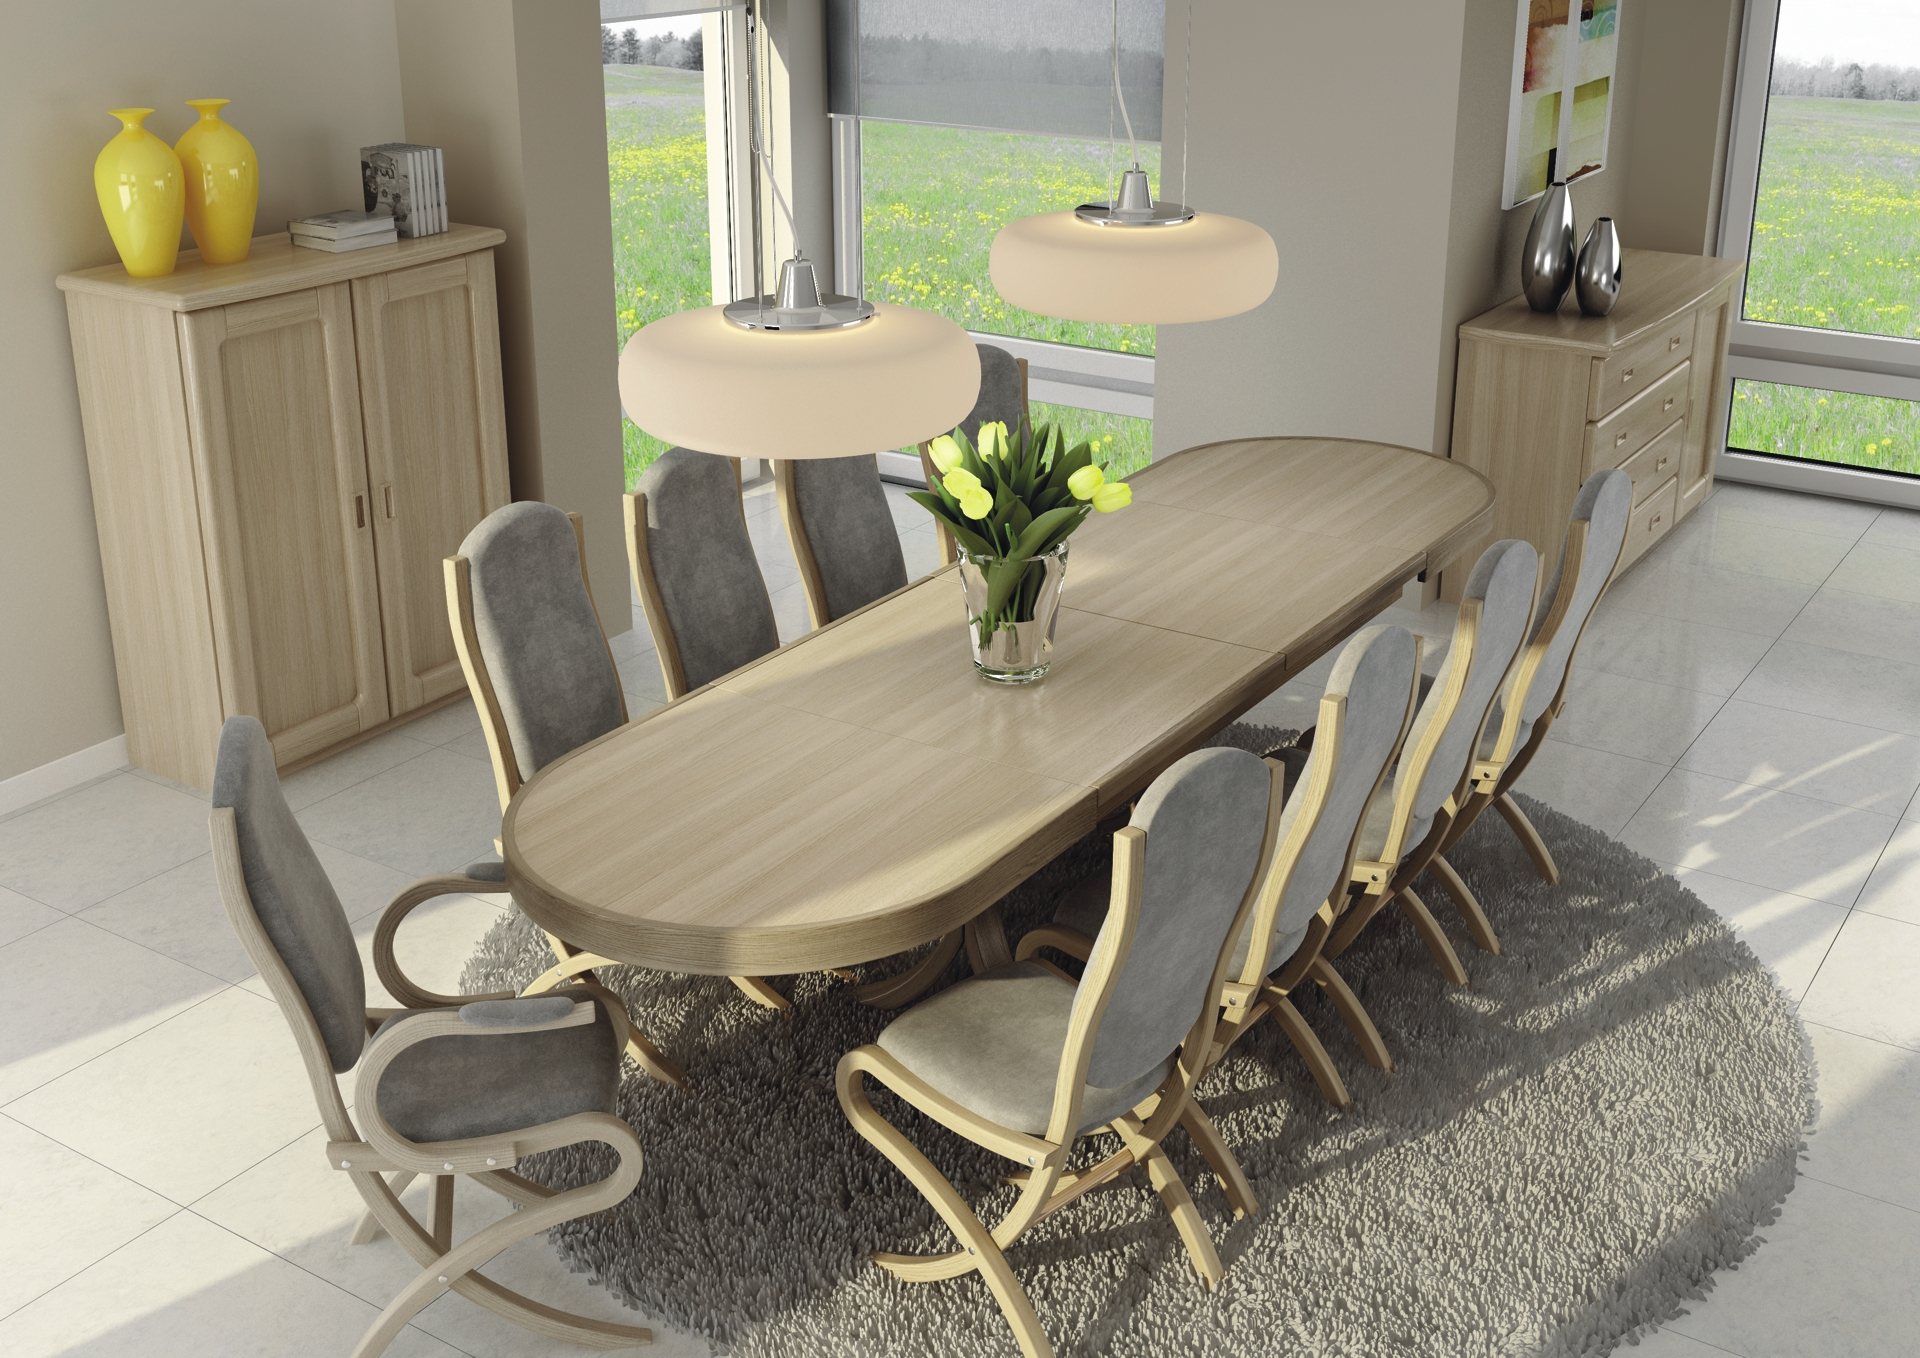 How to choose a dining chair